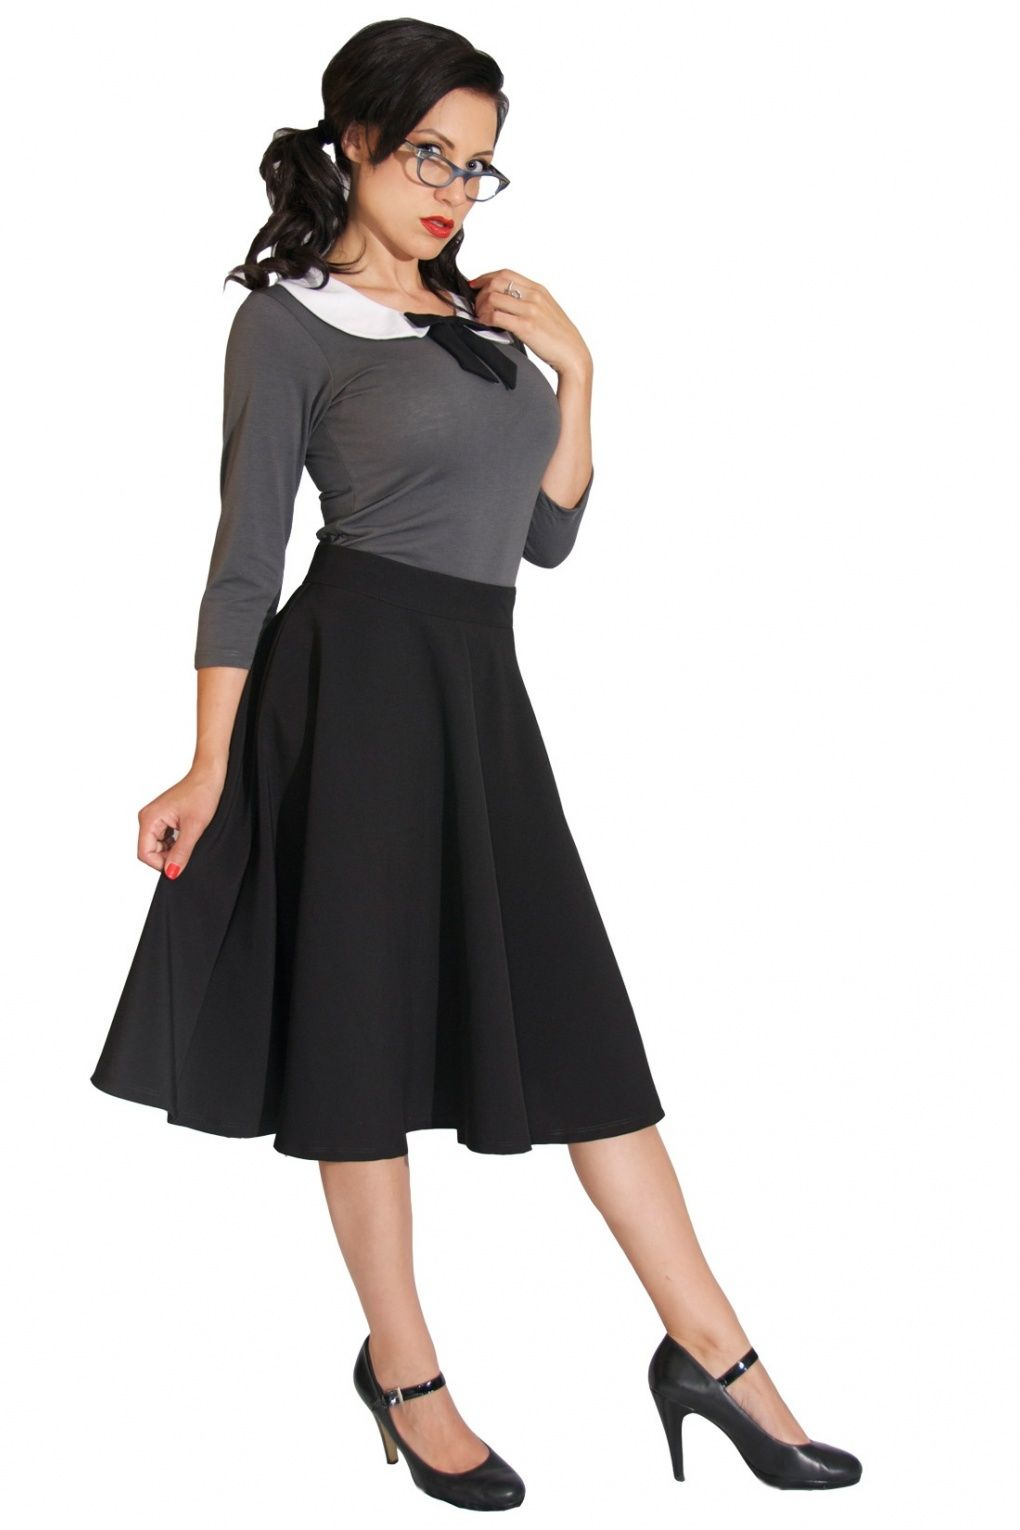 d100bebd1 Rock Steady Clothing - Rock Steady Clothing - 50s High Waisted Thrills  Skirt black swing